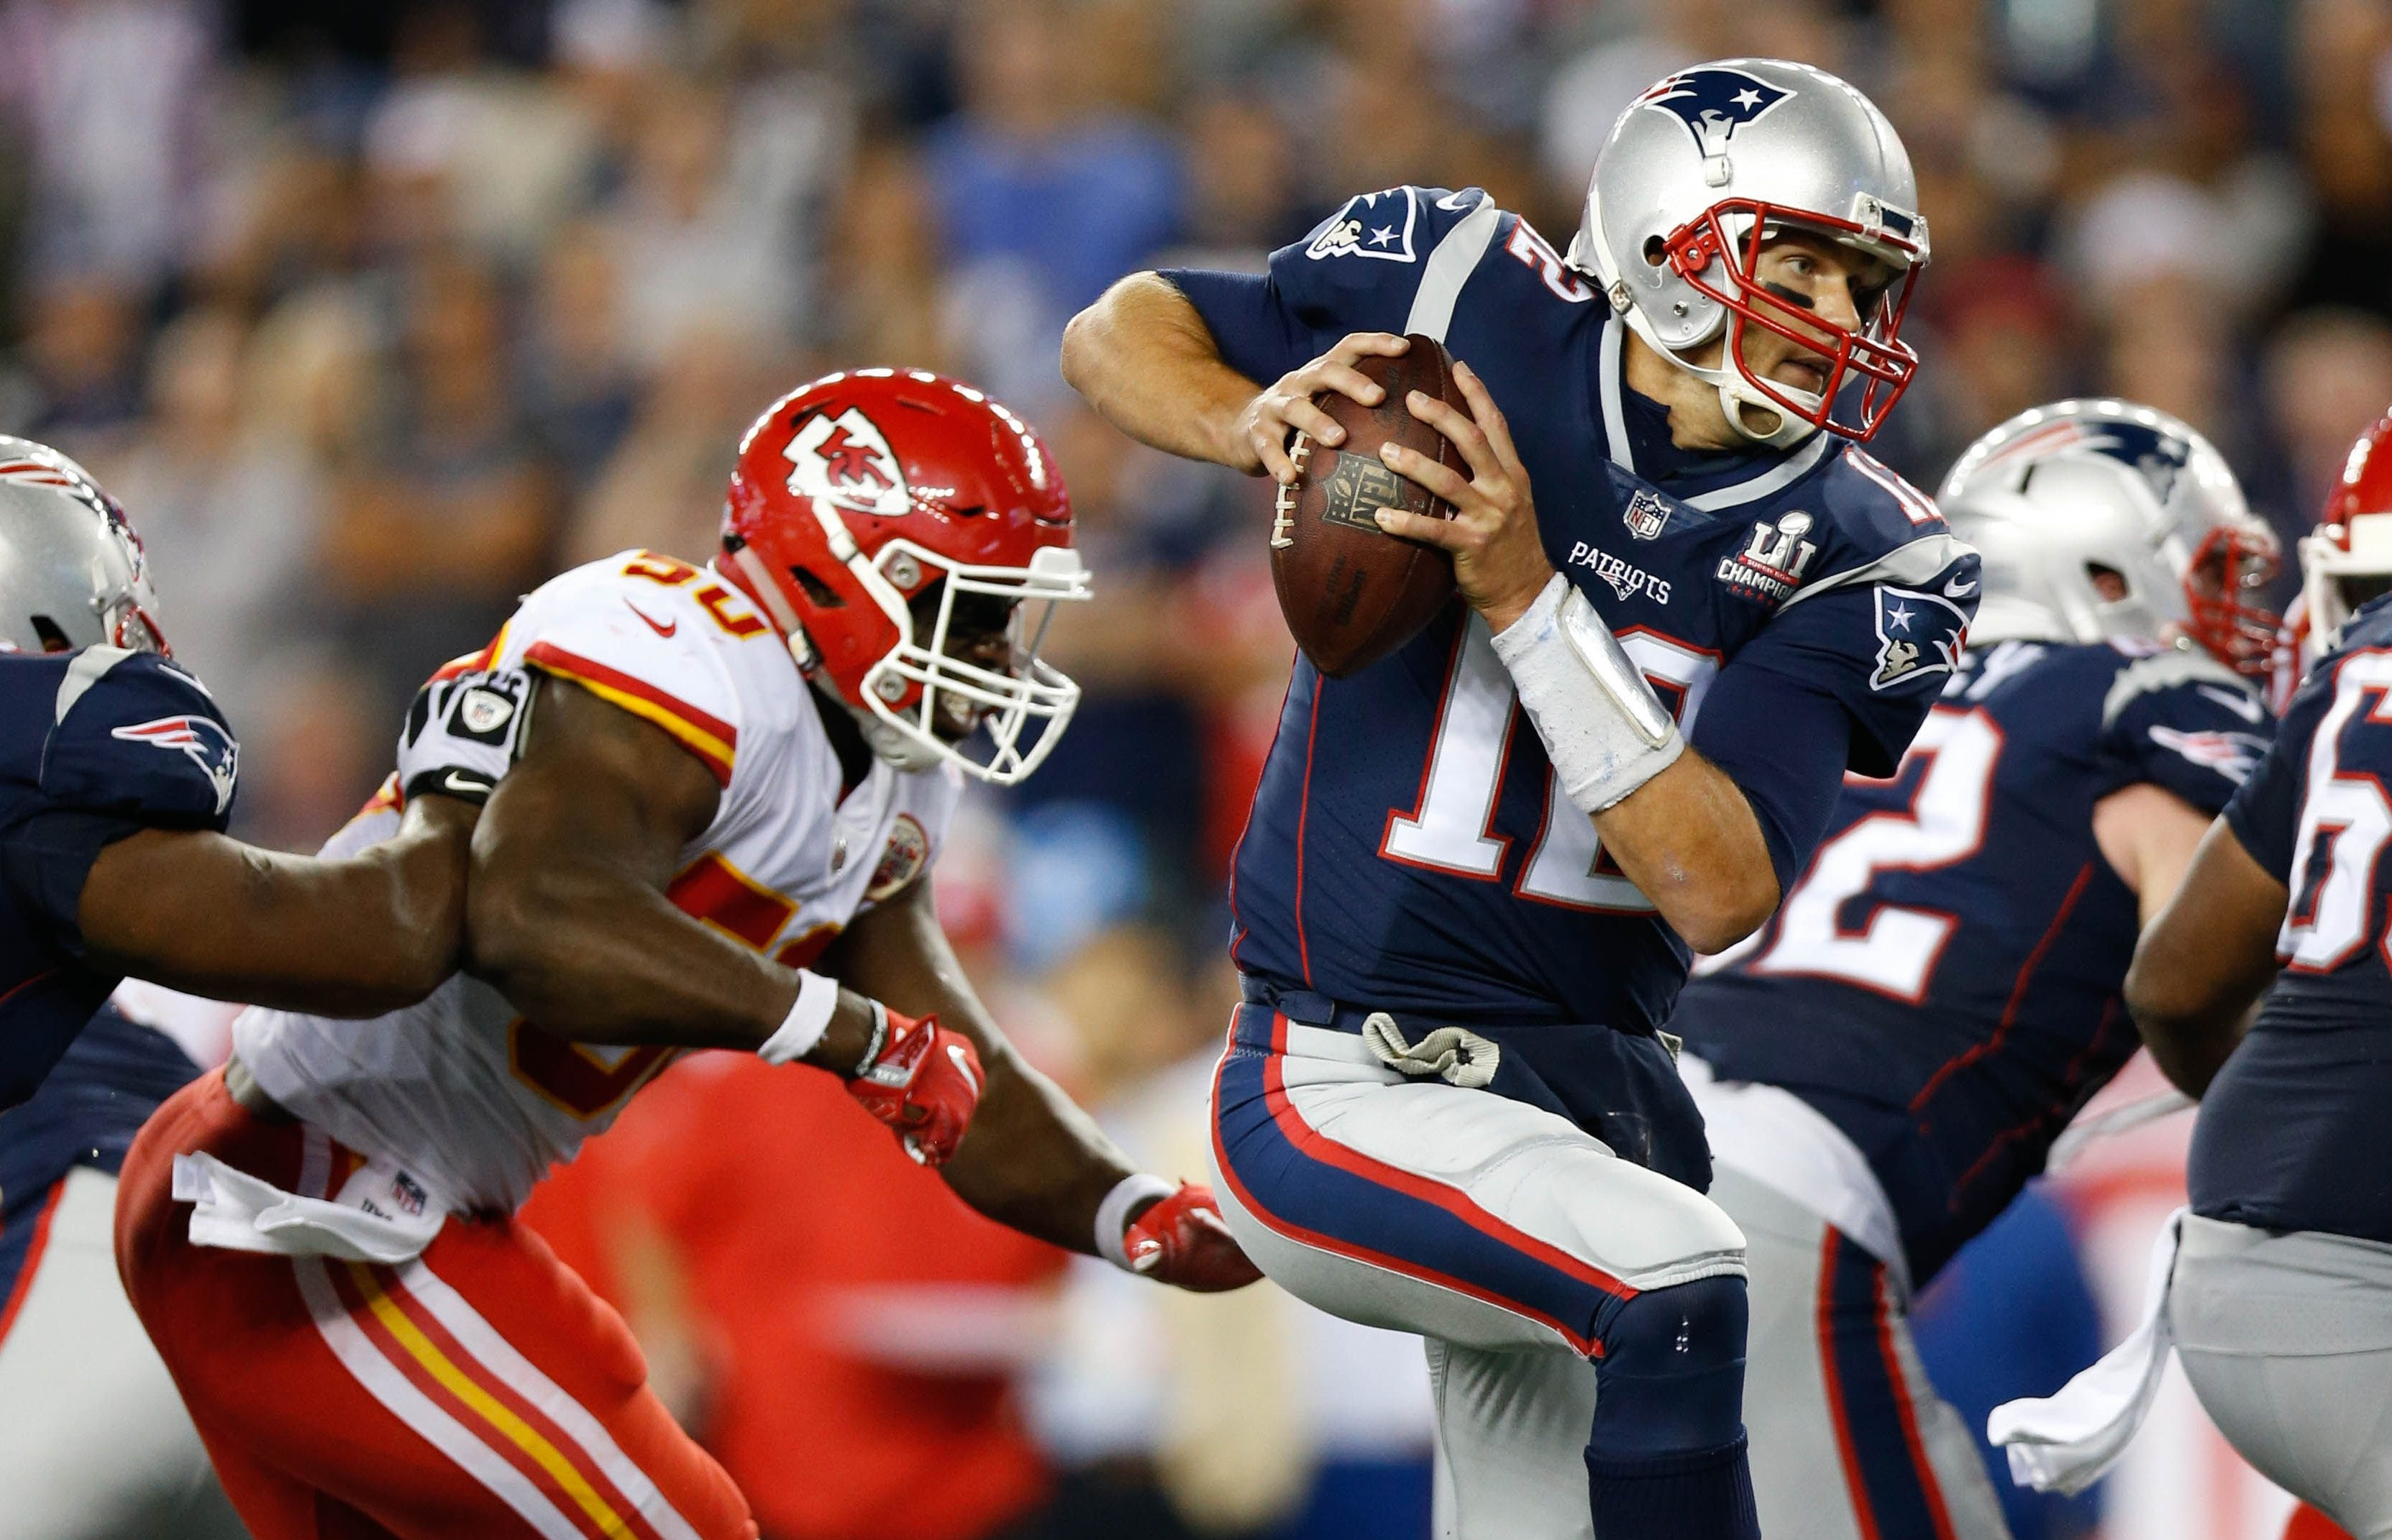 813bd460b3d What NFL games are on TV today? Week 6 pro football schedule